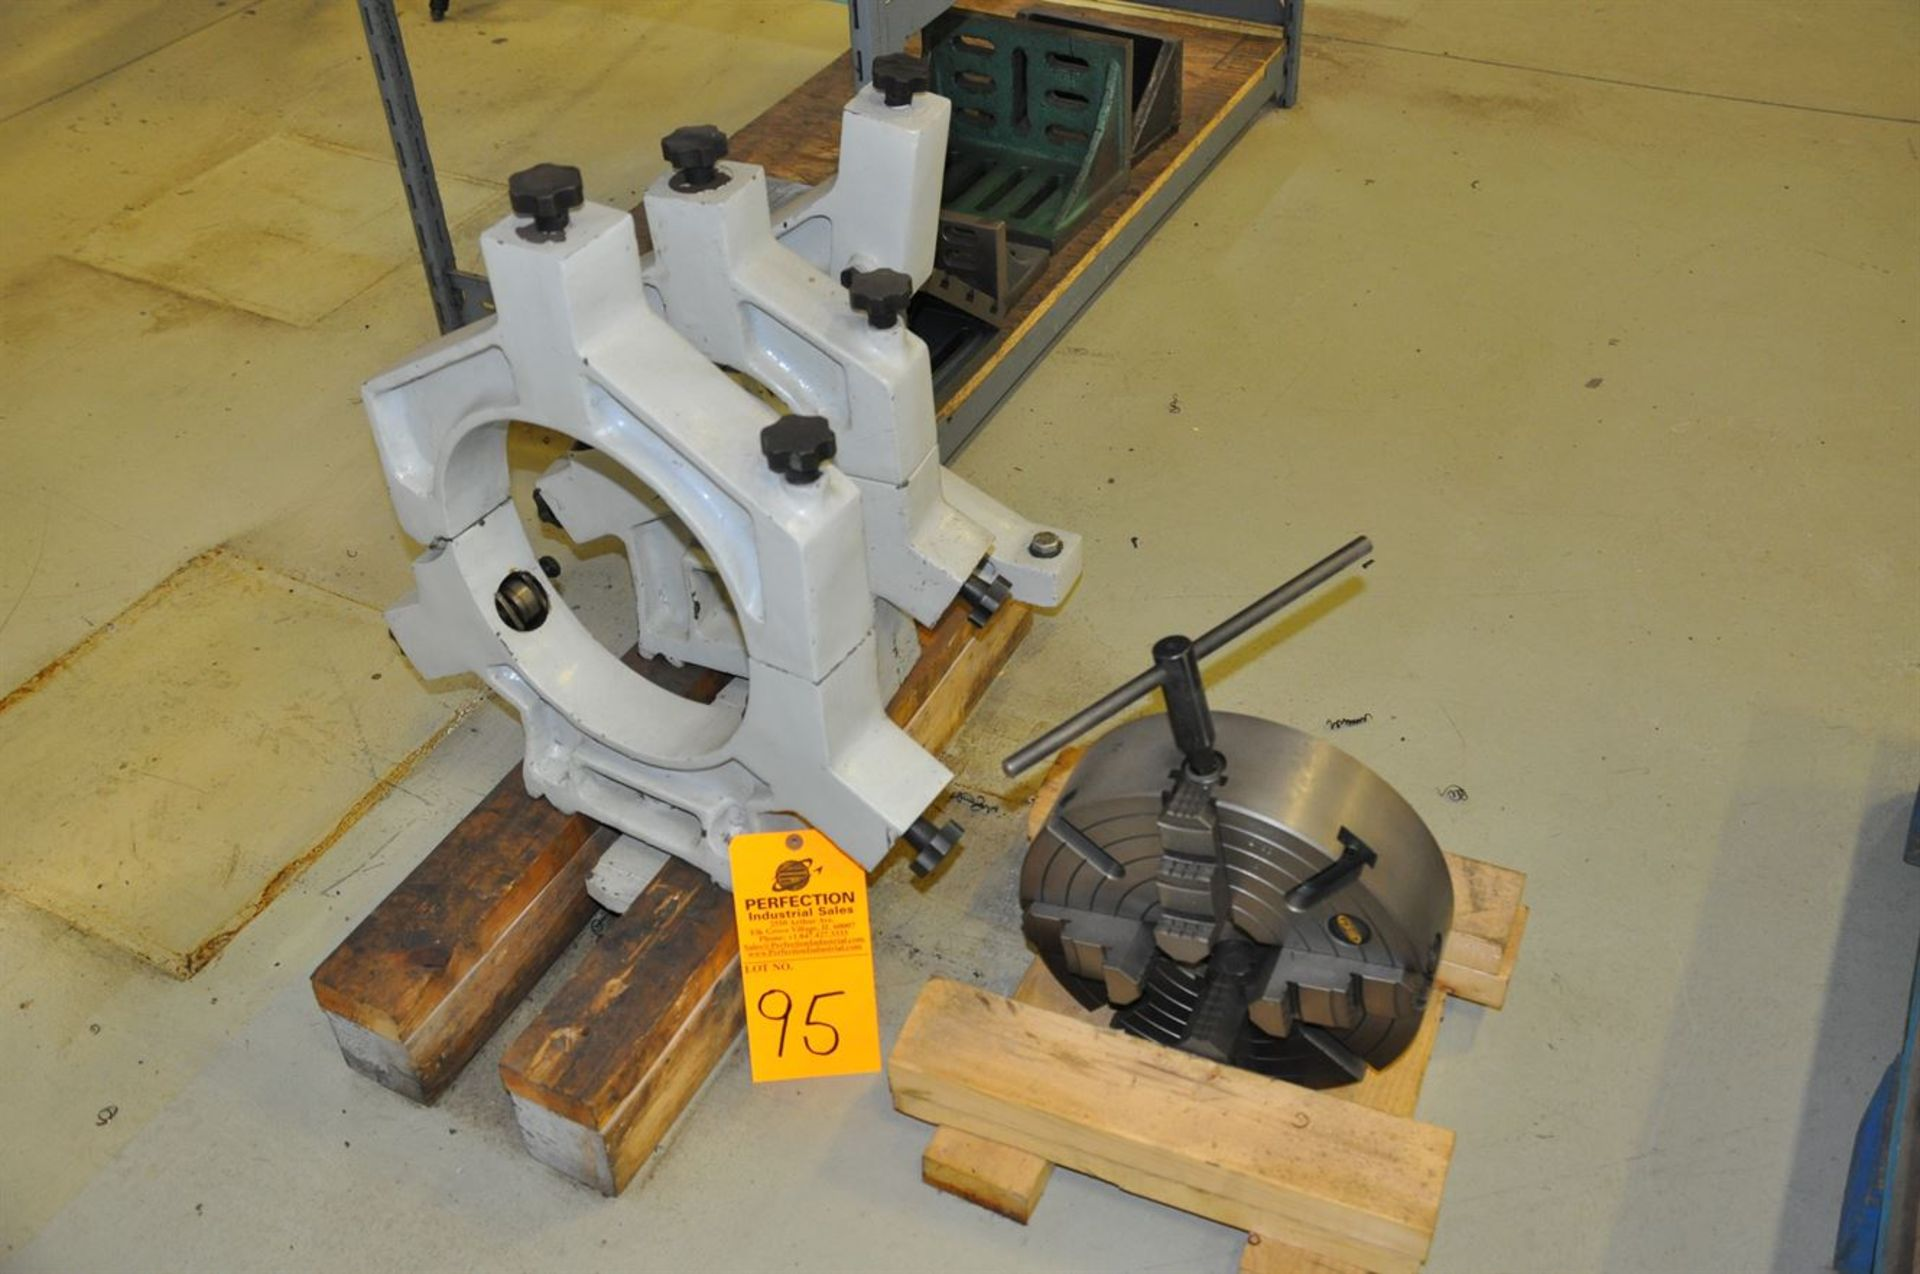 2012 SUMMIT 20X80B Gap Bed Engine Lathe, s/n 8052, w/ Taper Attachment, Quick Change Tool Post, - Image 5 of 5